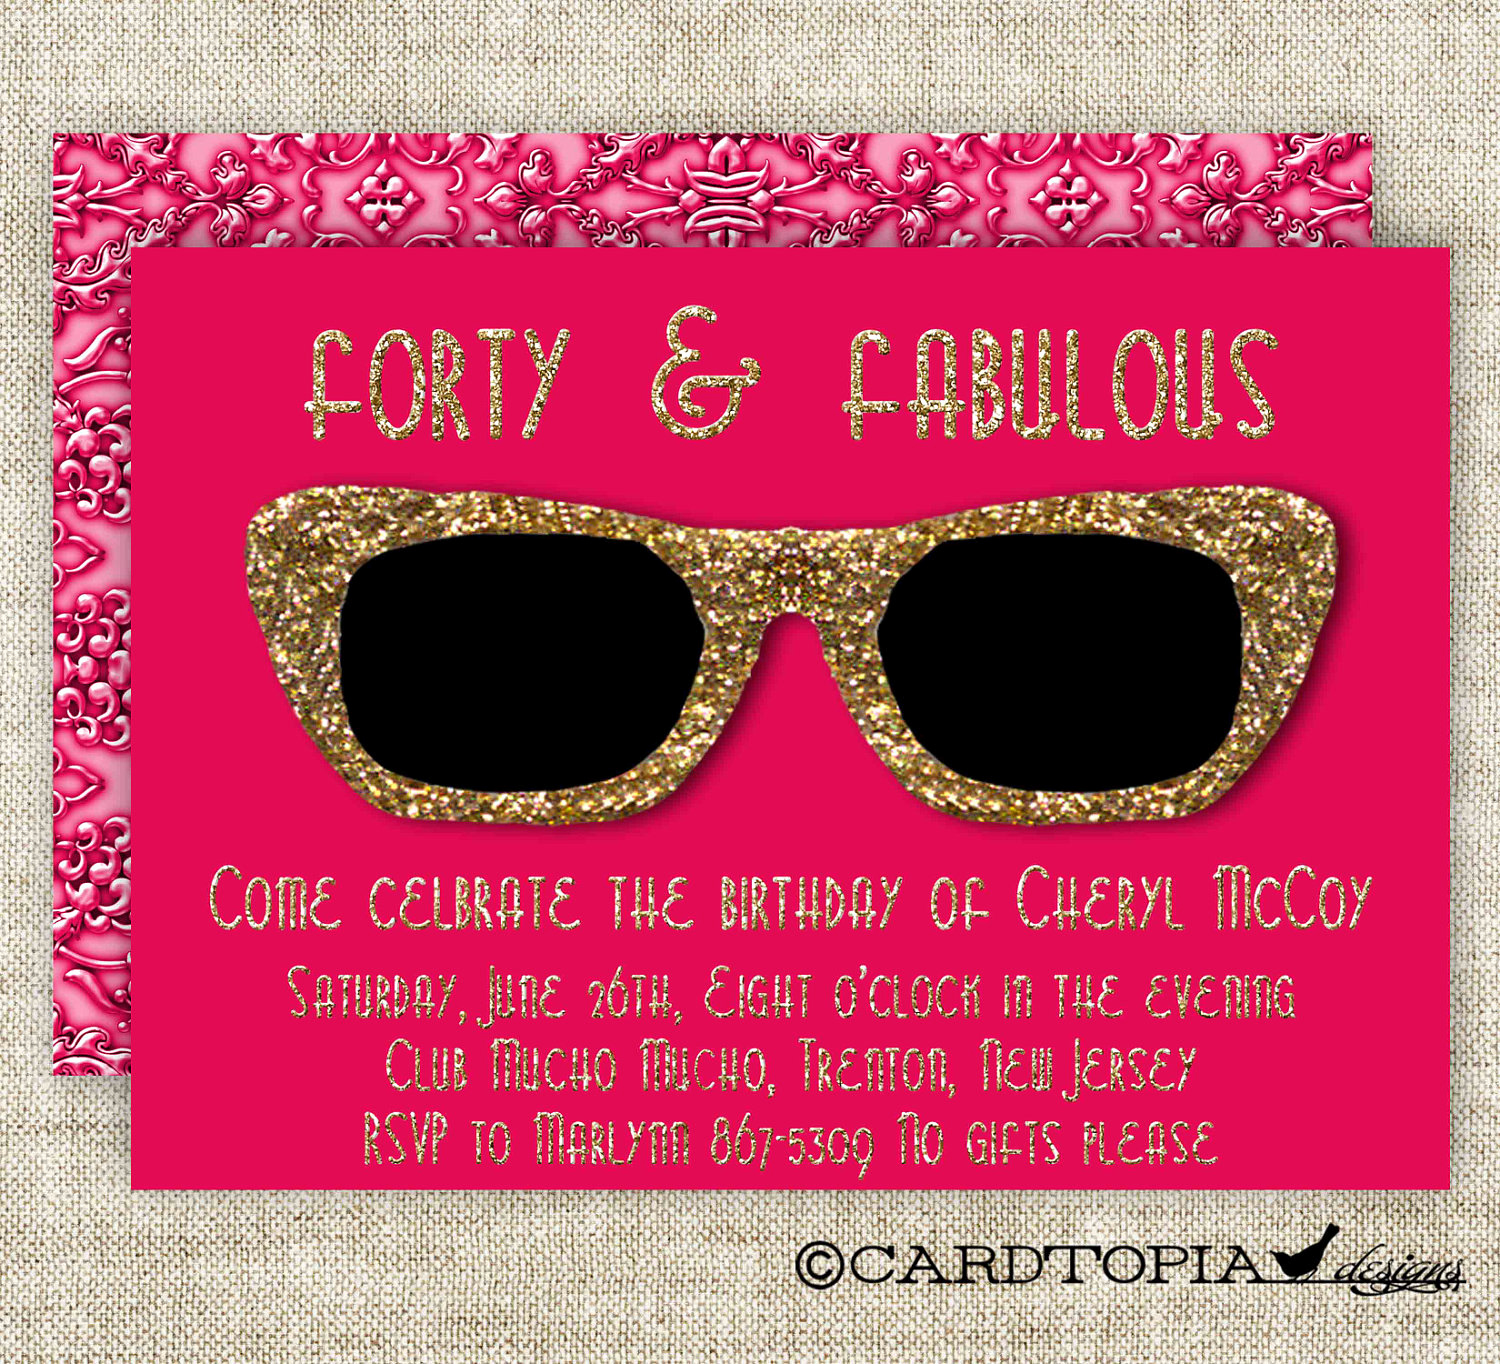 Golden Birthday Invitation Wording Beautiful Golden Birthday Party Invitations for Adult Woman or Girl